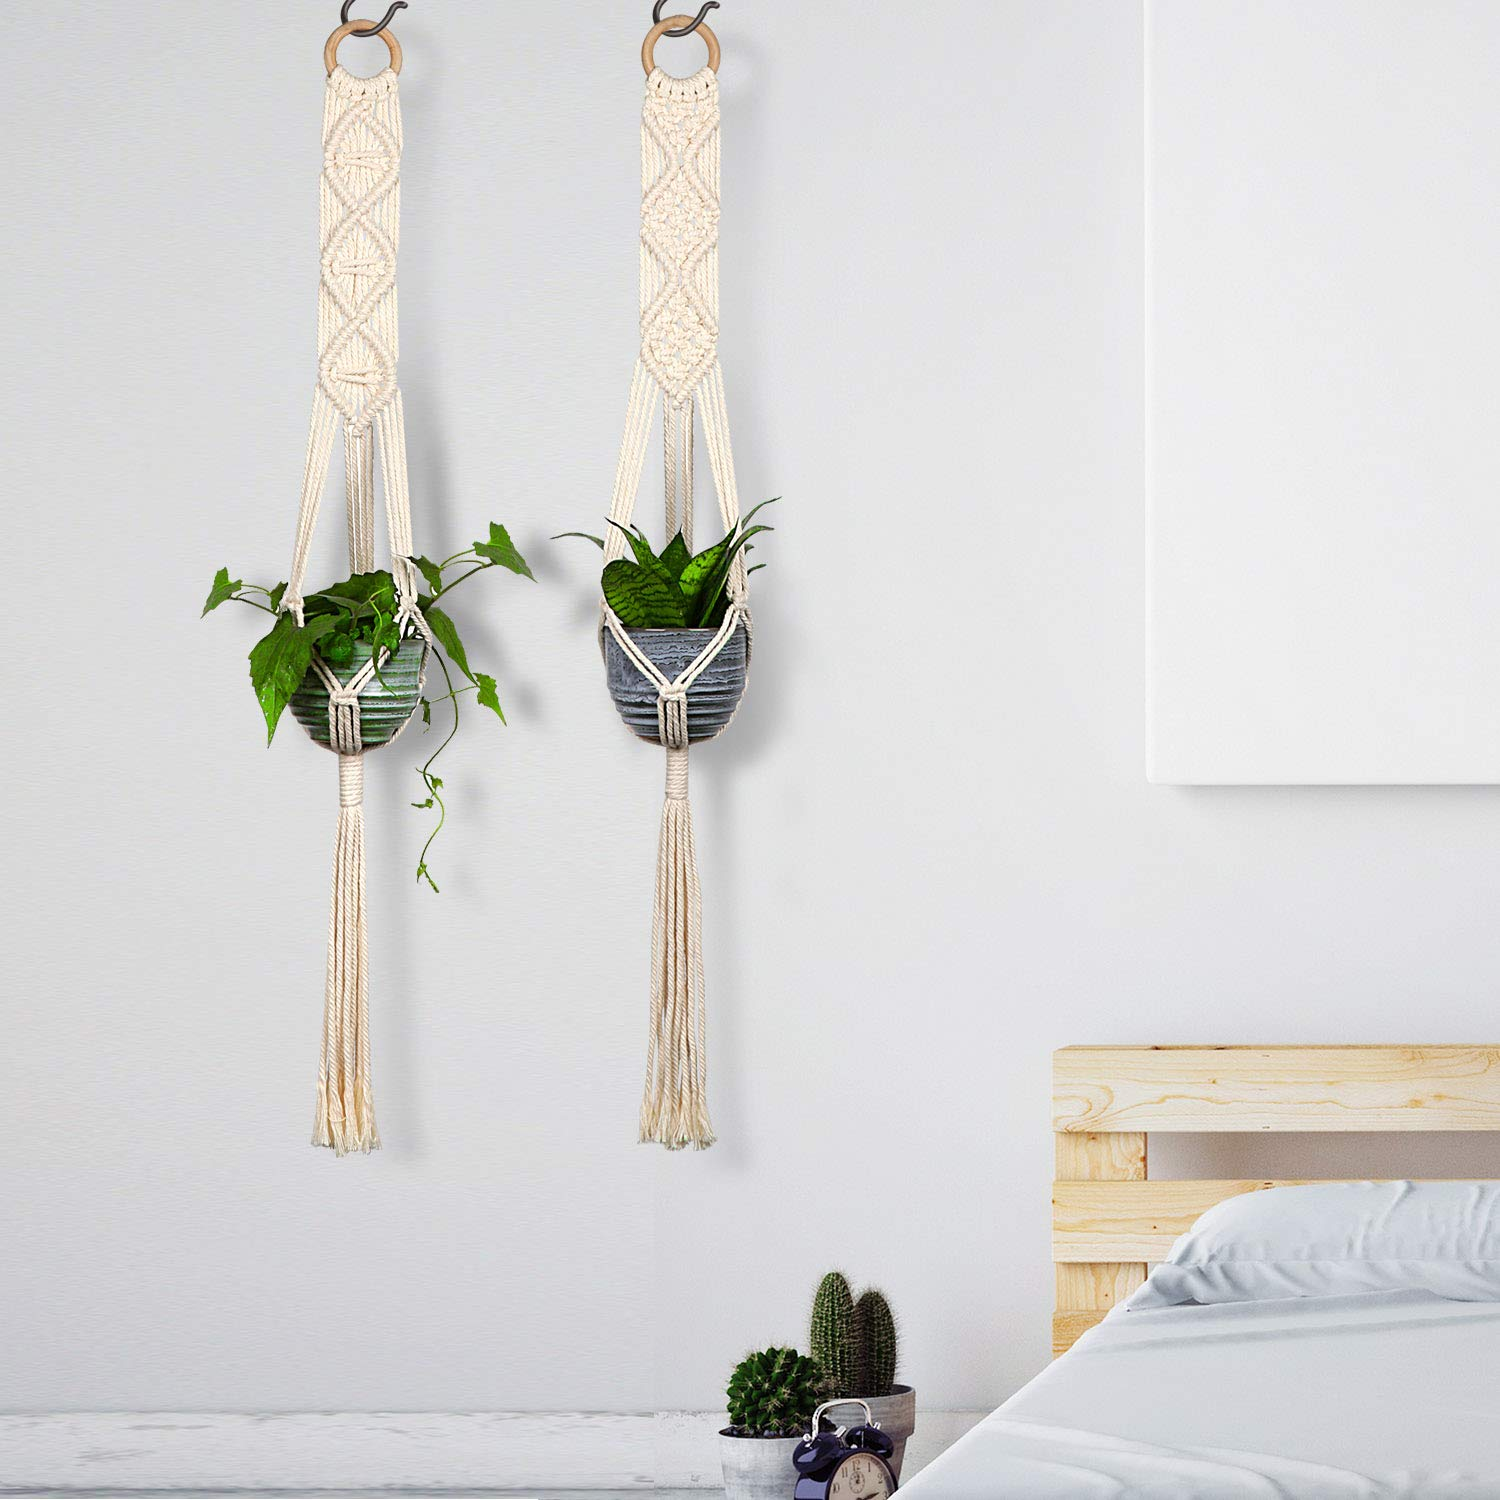 Macrame Plant Hangers - Hanging Planter Pot Holder - Boho Accent Plants Flower Pots Hangers - Planters Hanger Handmade by 100% Natural Cotton Rope Wall Art Home Decor, Set of 2